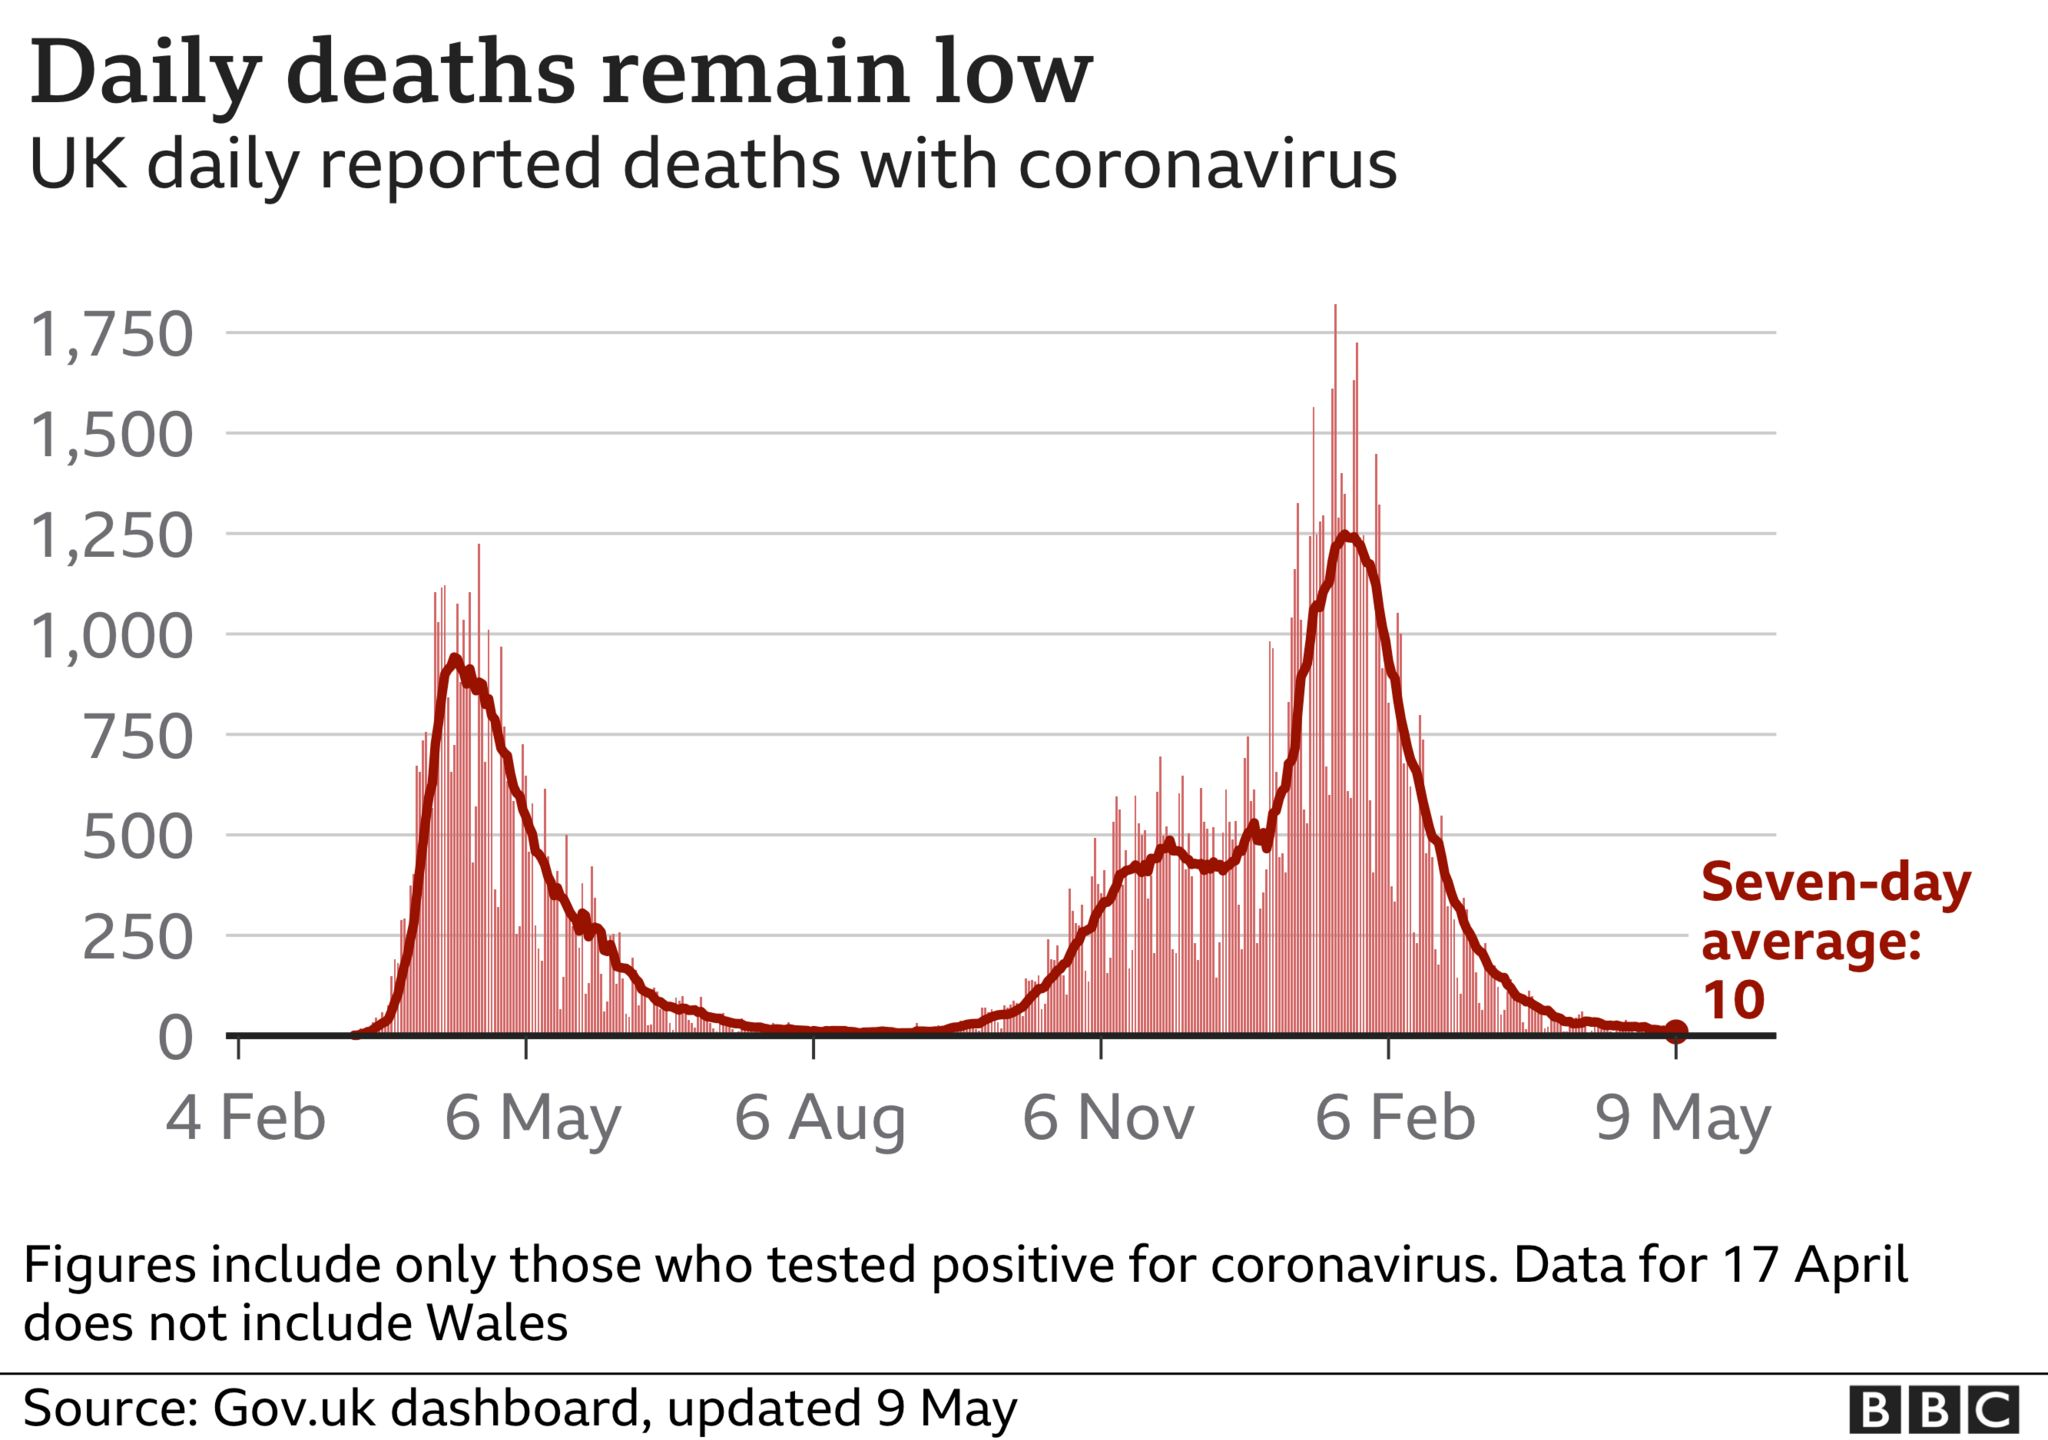 A graph showing the number of UK deaths